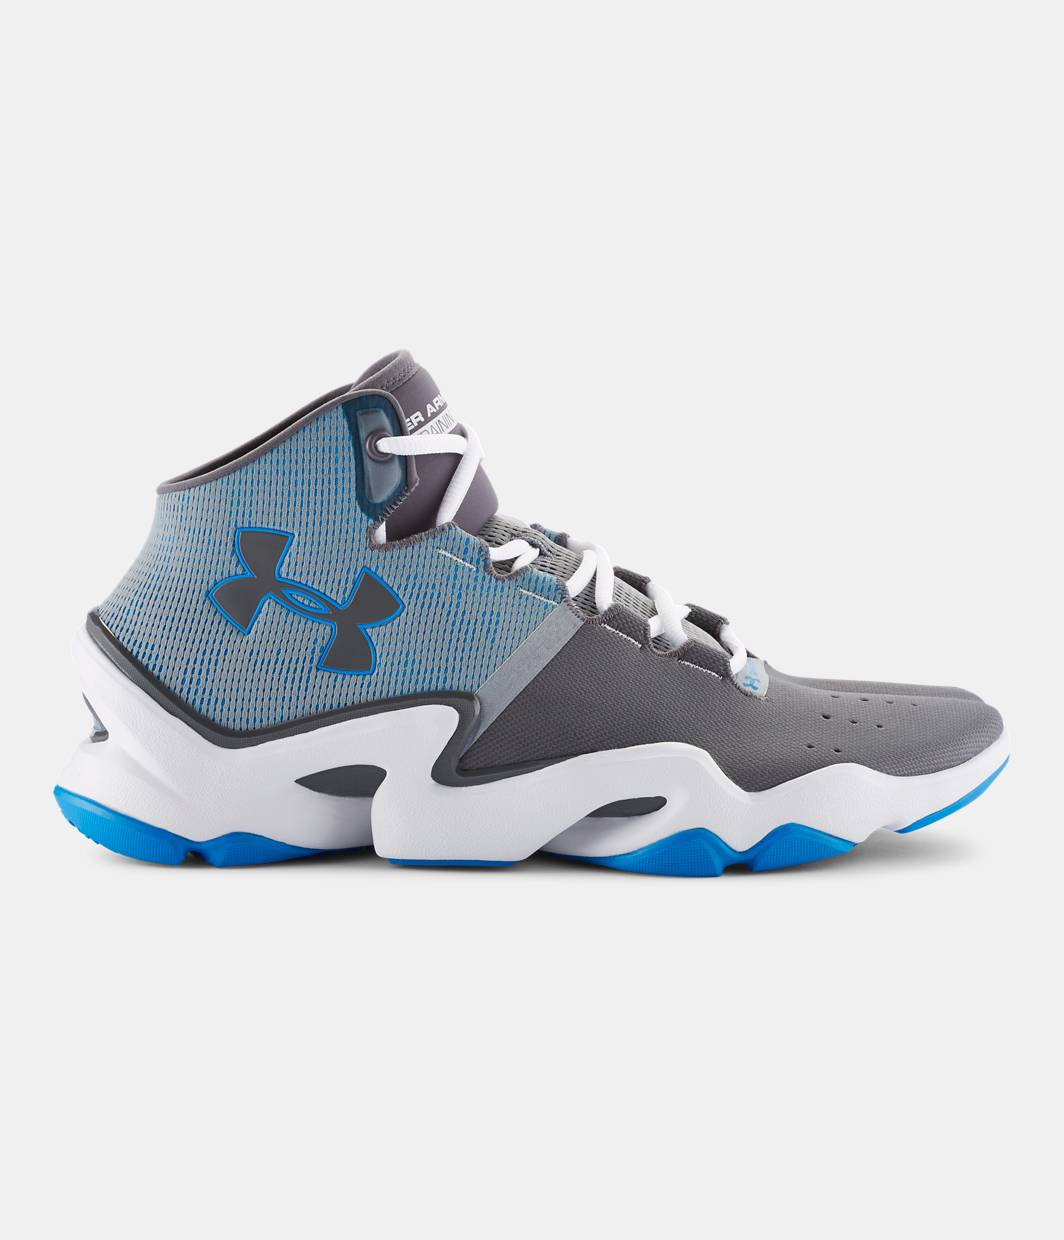 Under Armour Casual Shoes | Cheap Under Armour Clothes | Cheap Under Armour Shoes